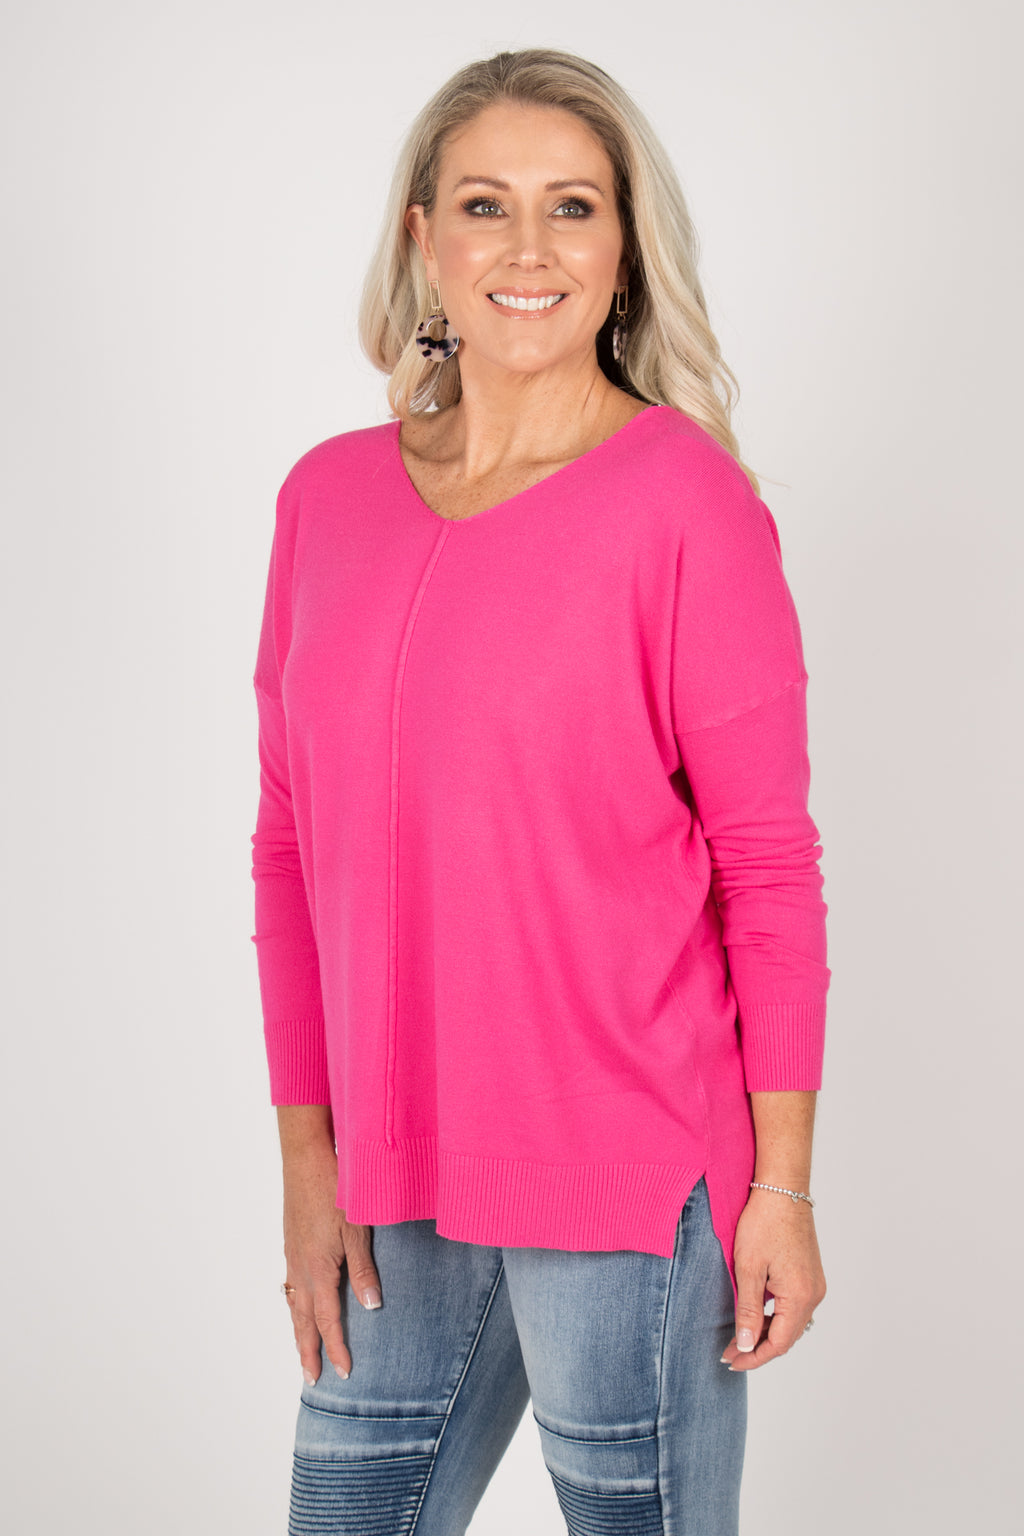 Jordene Knit Top in Hot Pink